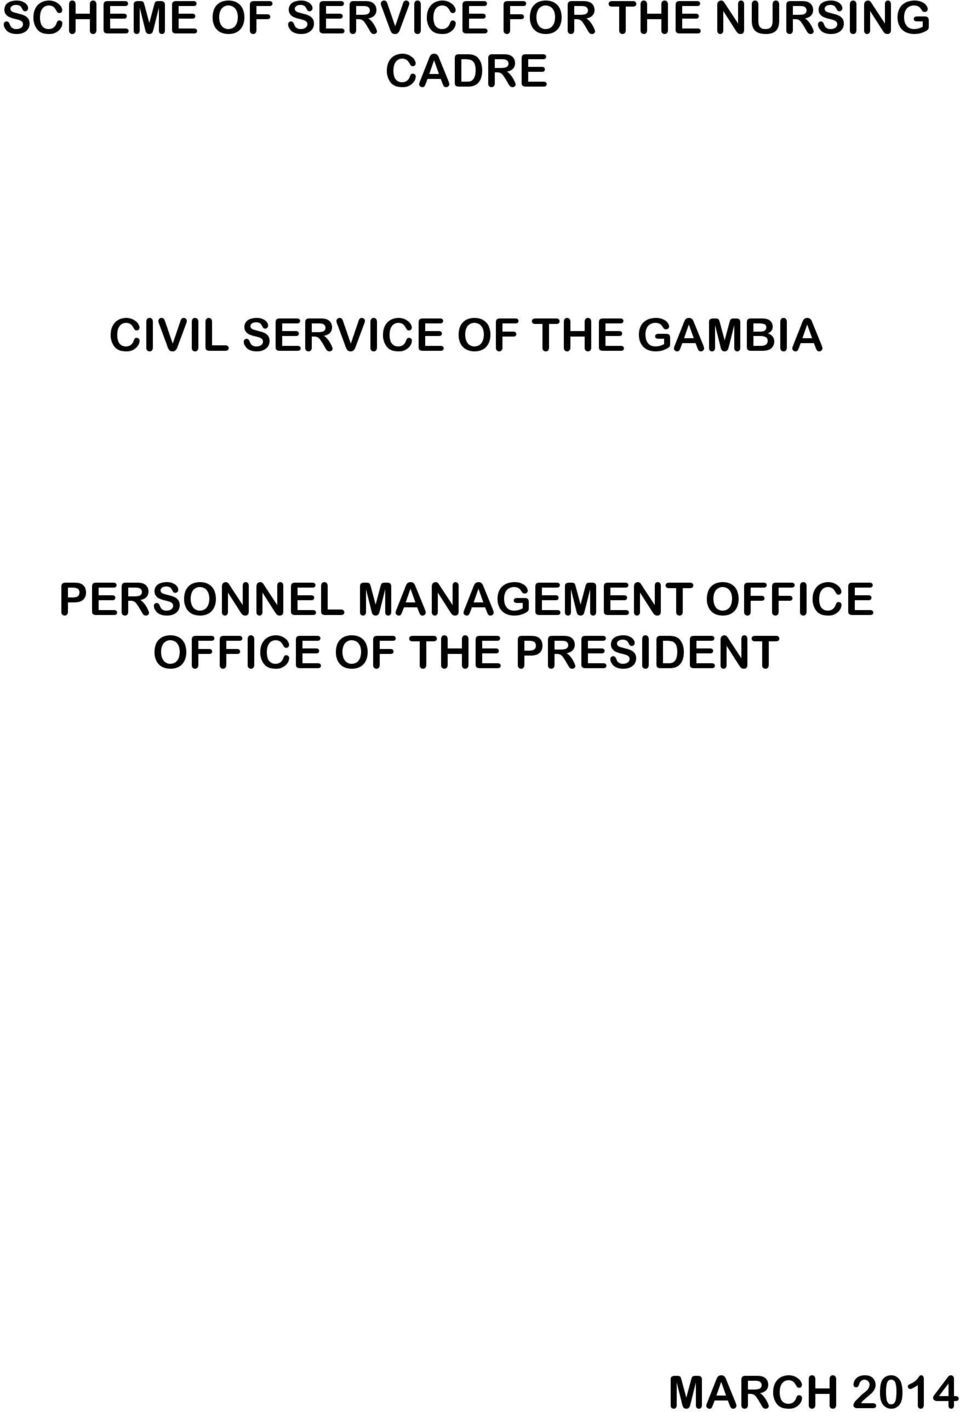 THE GAMBIA PERSONNEL MANAGEMENT